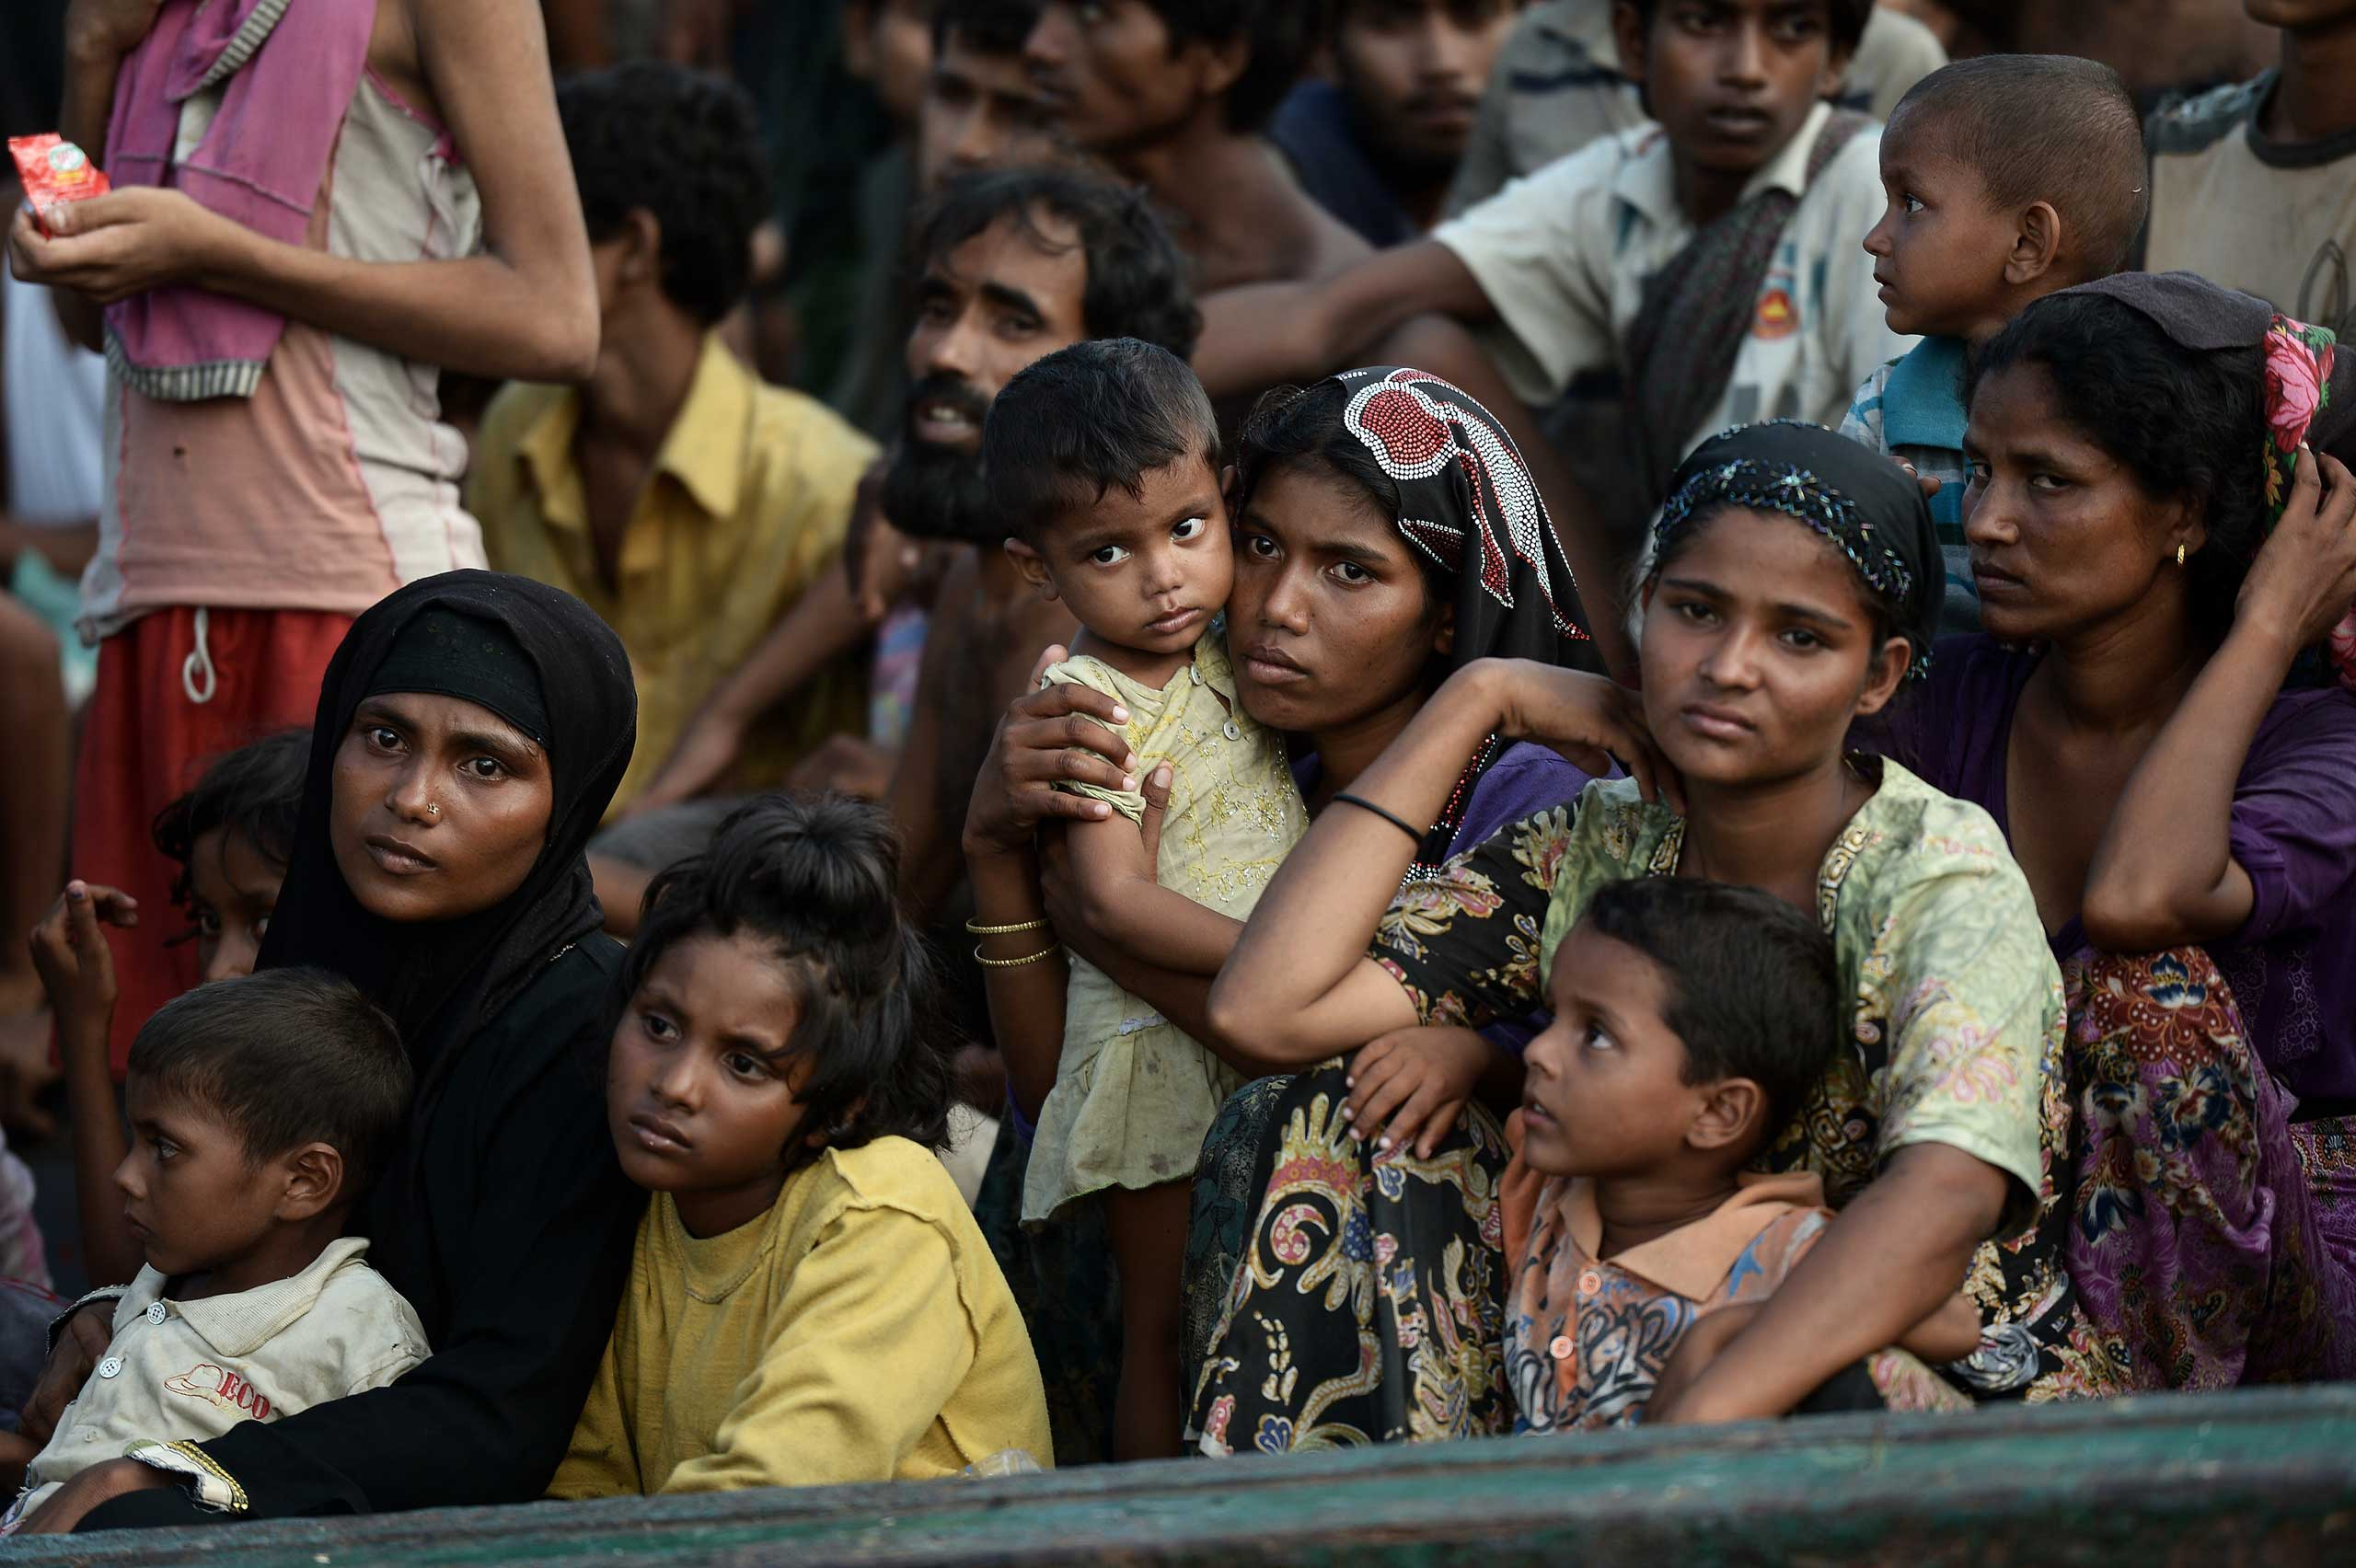 Rohingya migrants sit on a boat drifting in Thai waters off the southern island of Koh Lipe in the Andaman sea on May 14, 2015.